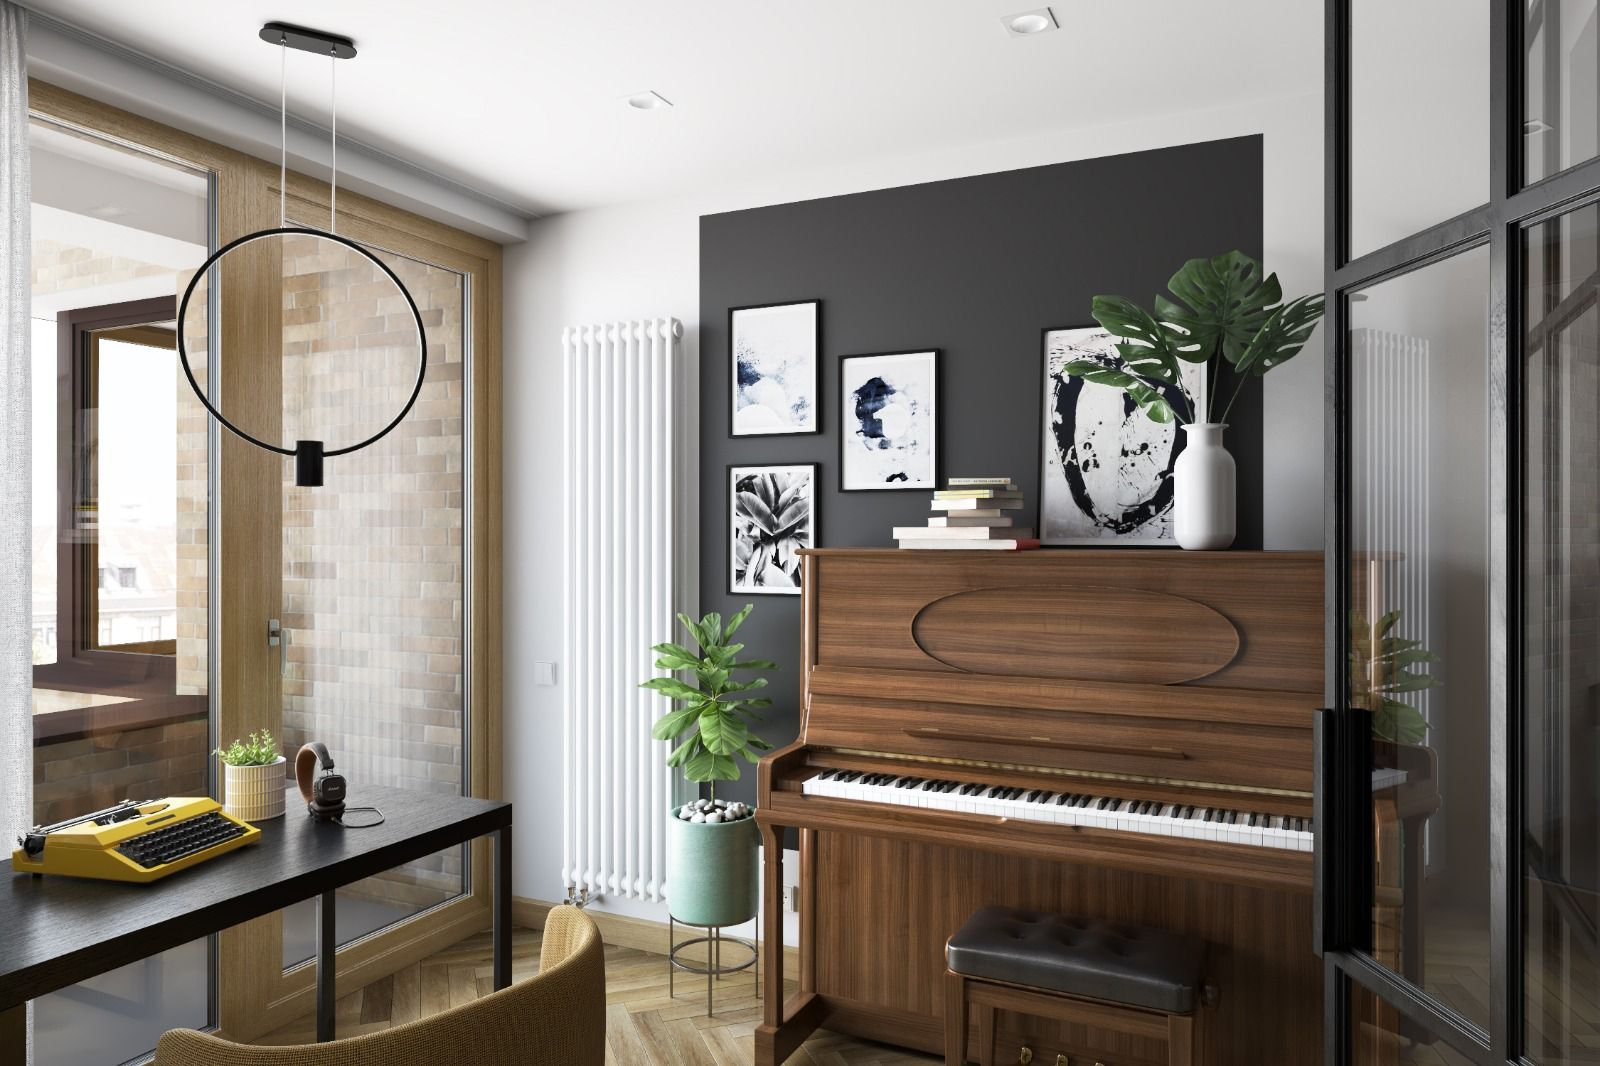 Modern Living Room With Piano Ideas Piano In Living Room Decorating Ideas Scandinavian Inte Living Room With Piano Piano Interior Design Piano In Living Room Living room ideas piano